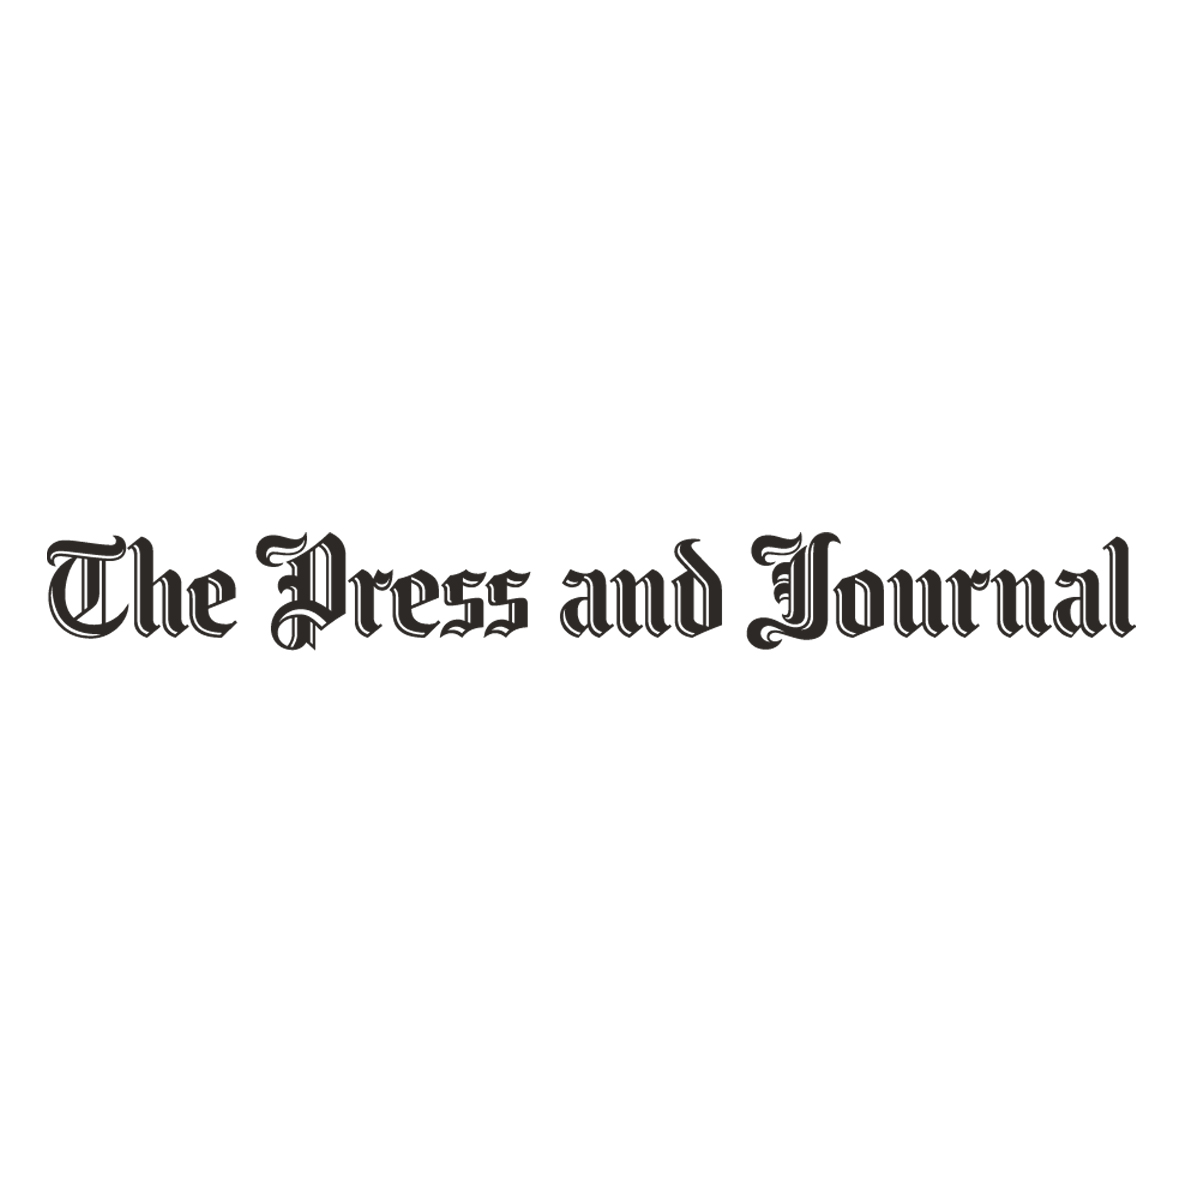 Media Jobs: News reporters and a features writer, The Press and Journal